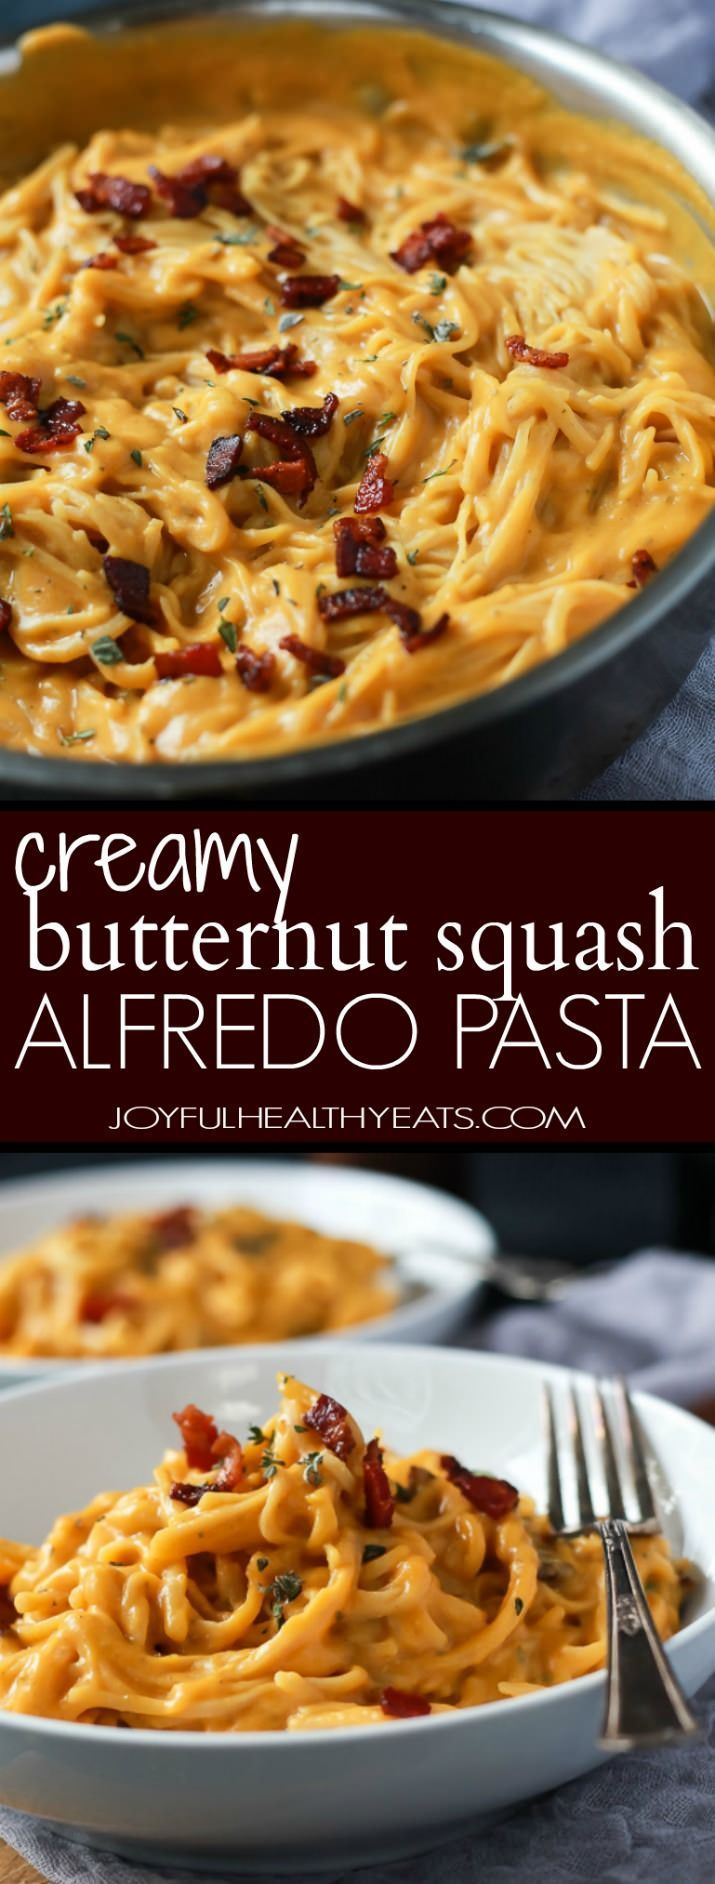 Creamy Butternut Squash Alfredo Pasta permeated with fresh sage and thyme then perfected with a garnish of salty bacon on top! The fall recipe is silky smooth, luscious, healthy and absolutely addictive.